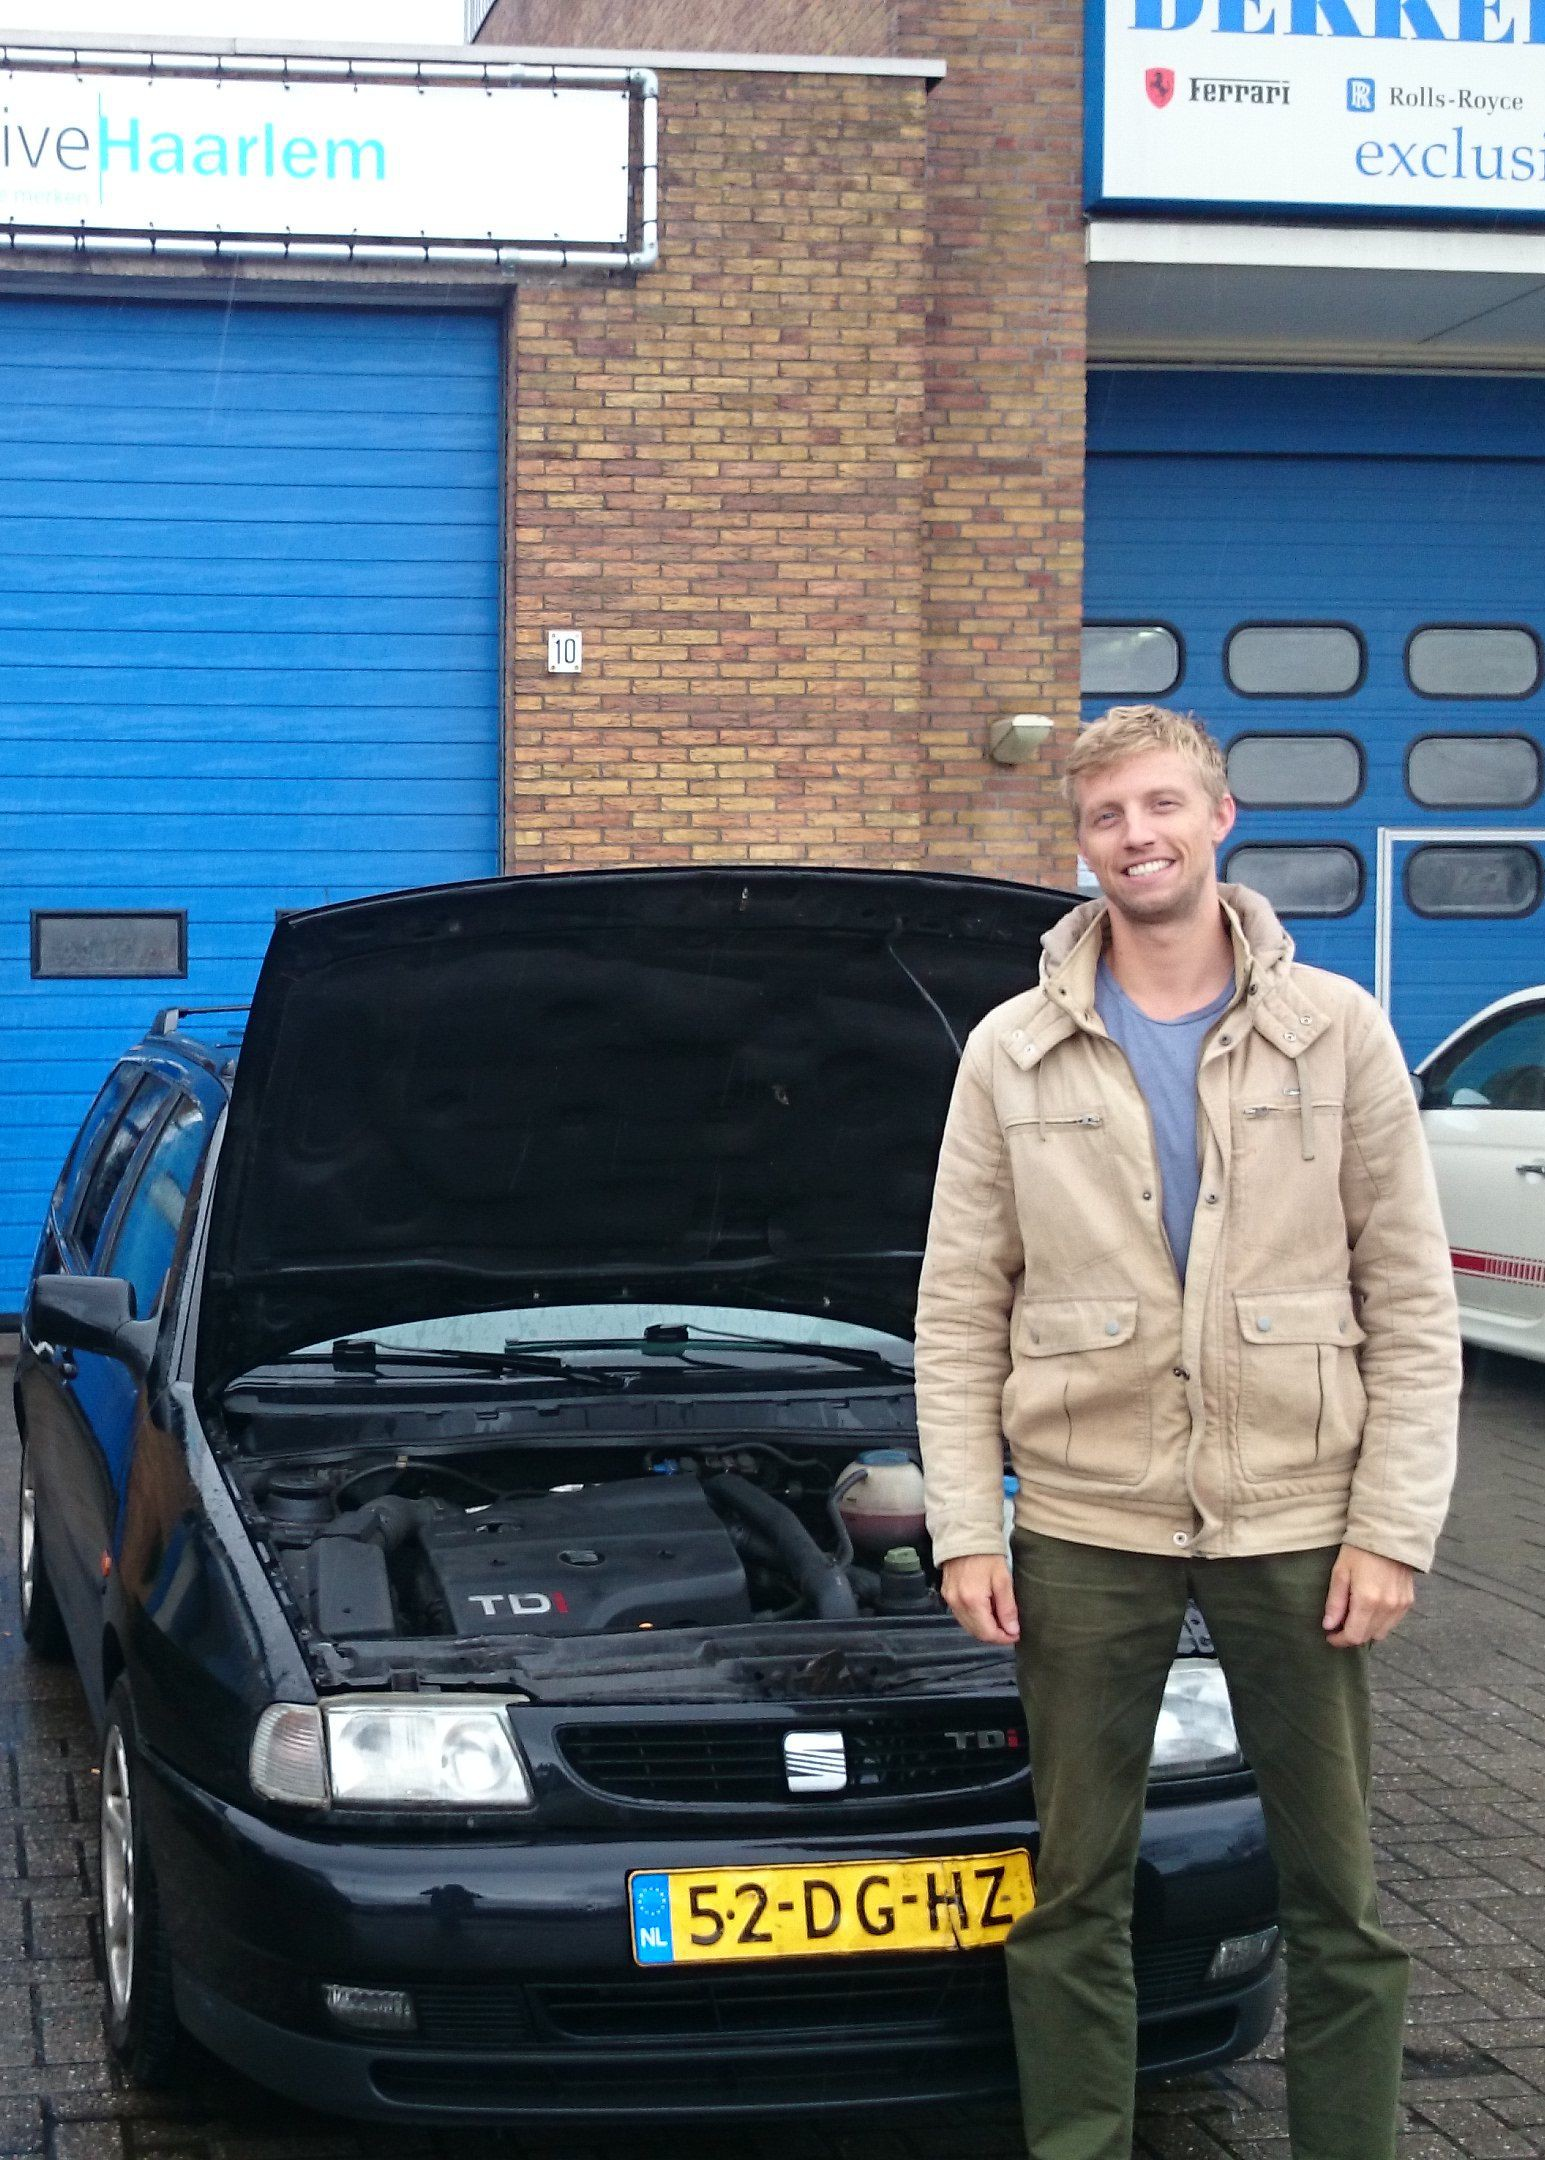 Automotive garage haarlem auto reparatie garage haarlem for Garage daniel auto